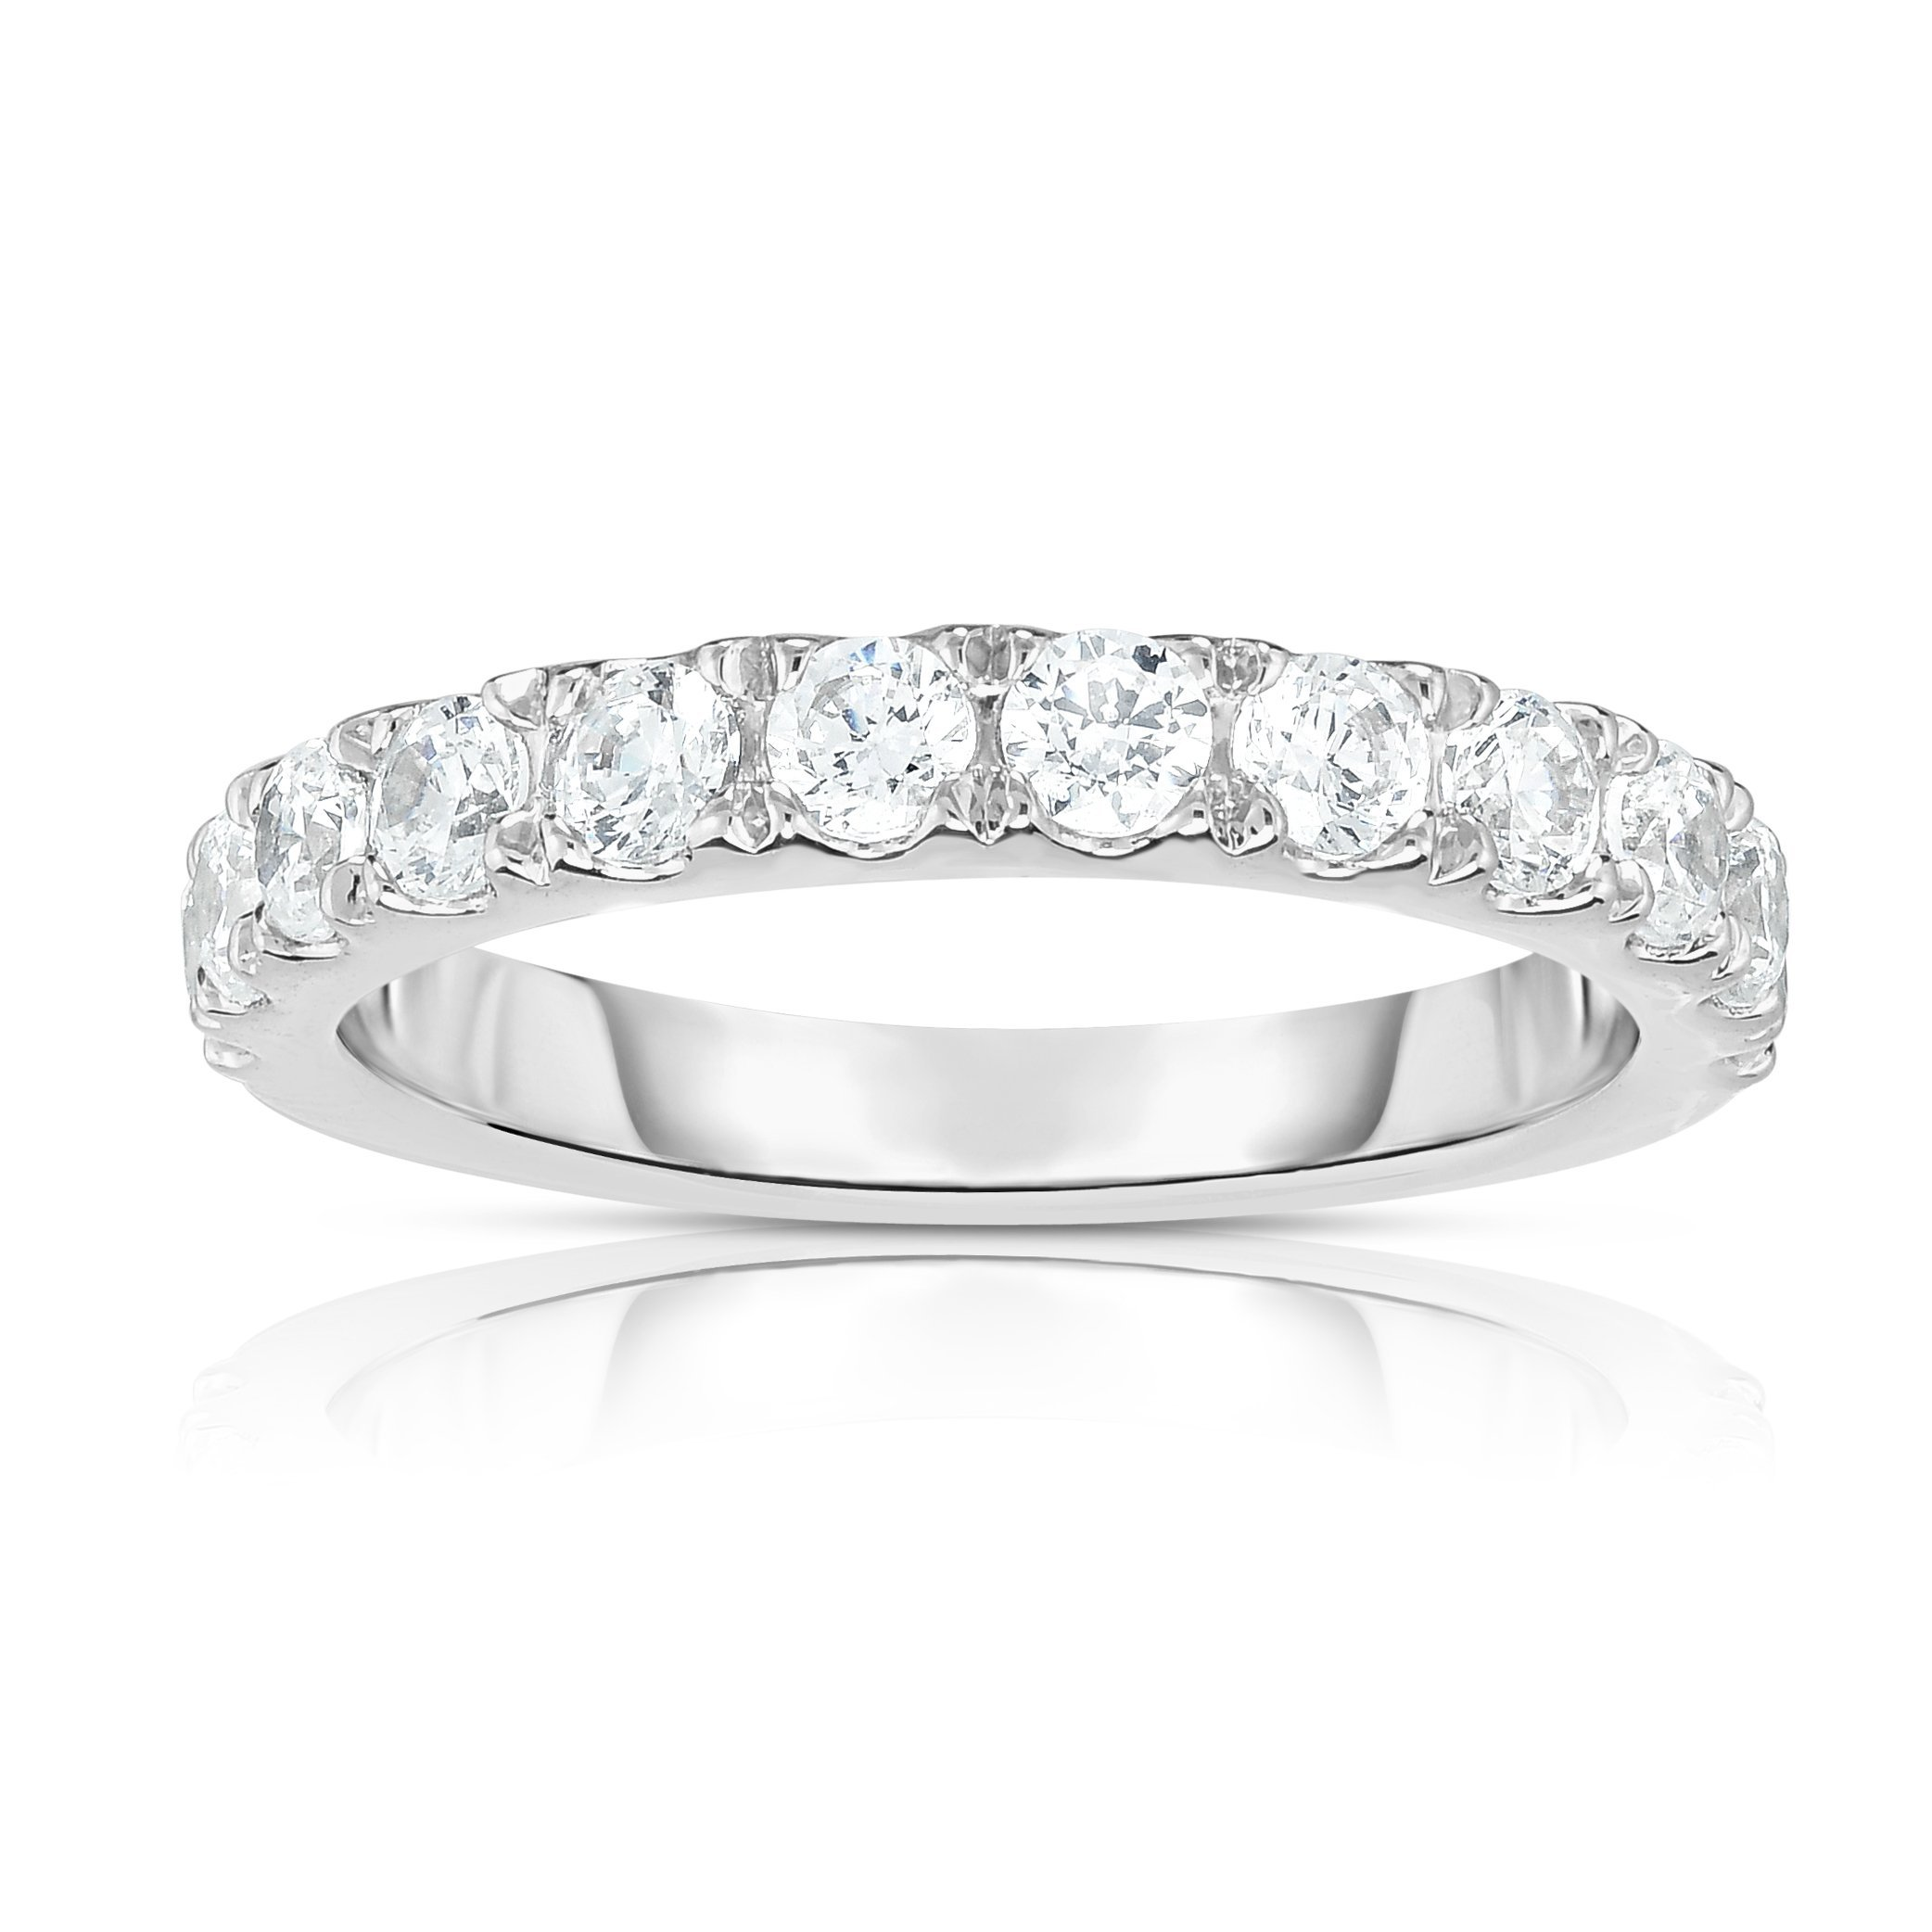 Noray Designs 14K White Gold Diamond (1.10 Ct, SI2-I1 Clarity, G-H Color) Wedding Band